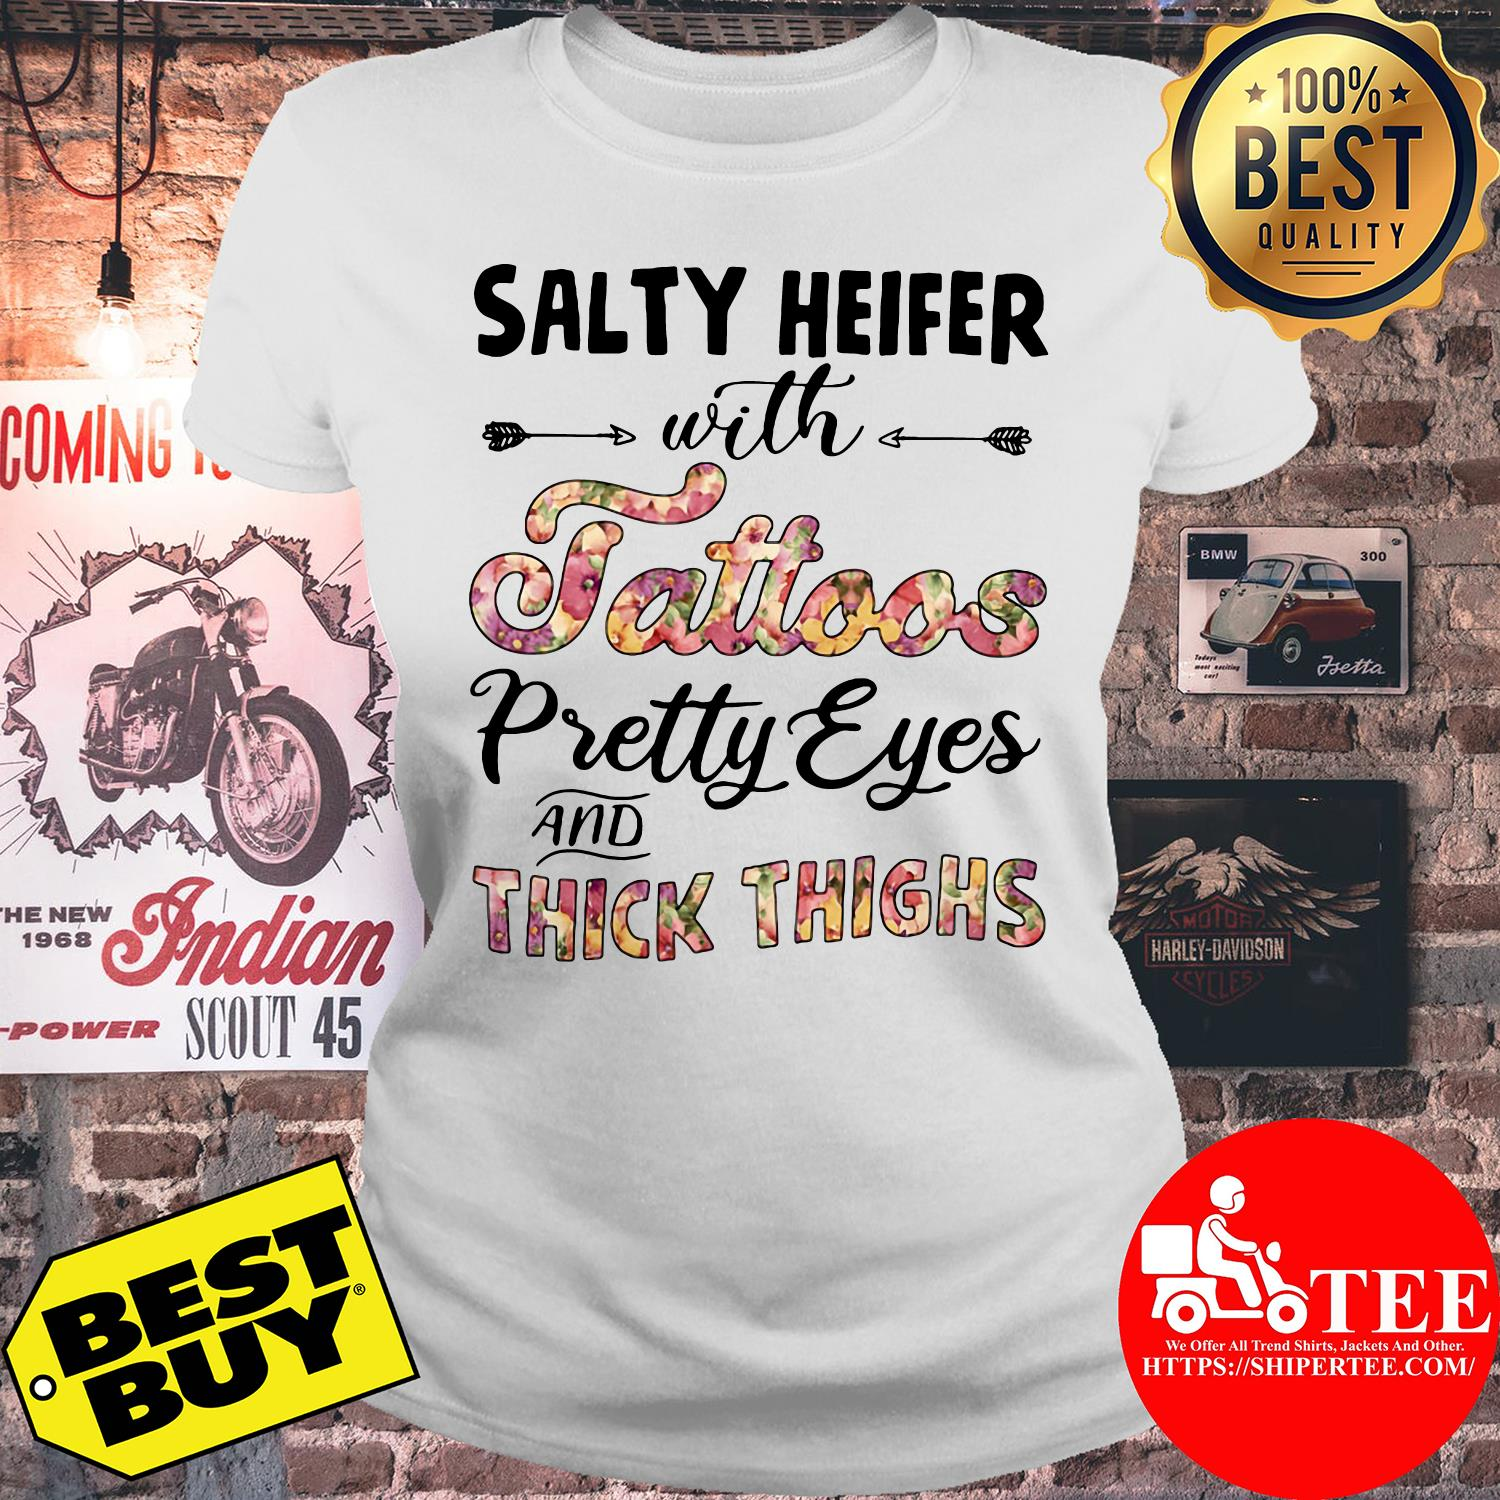 Salty heifer with tattoos pretty eyes and thick thighs ladies tee